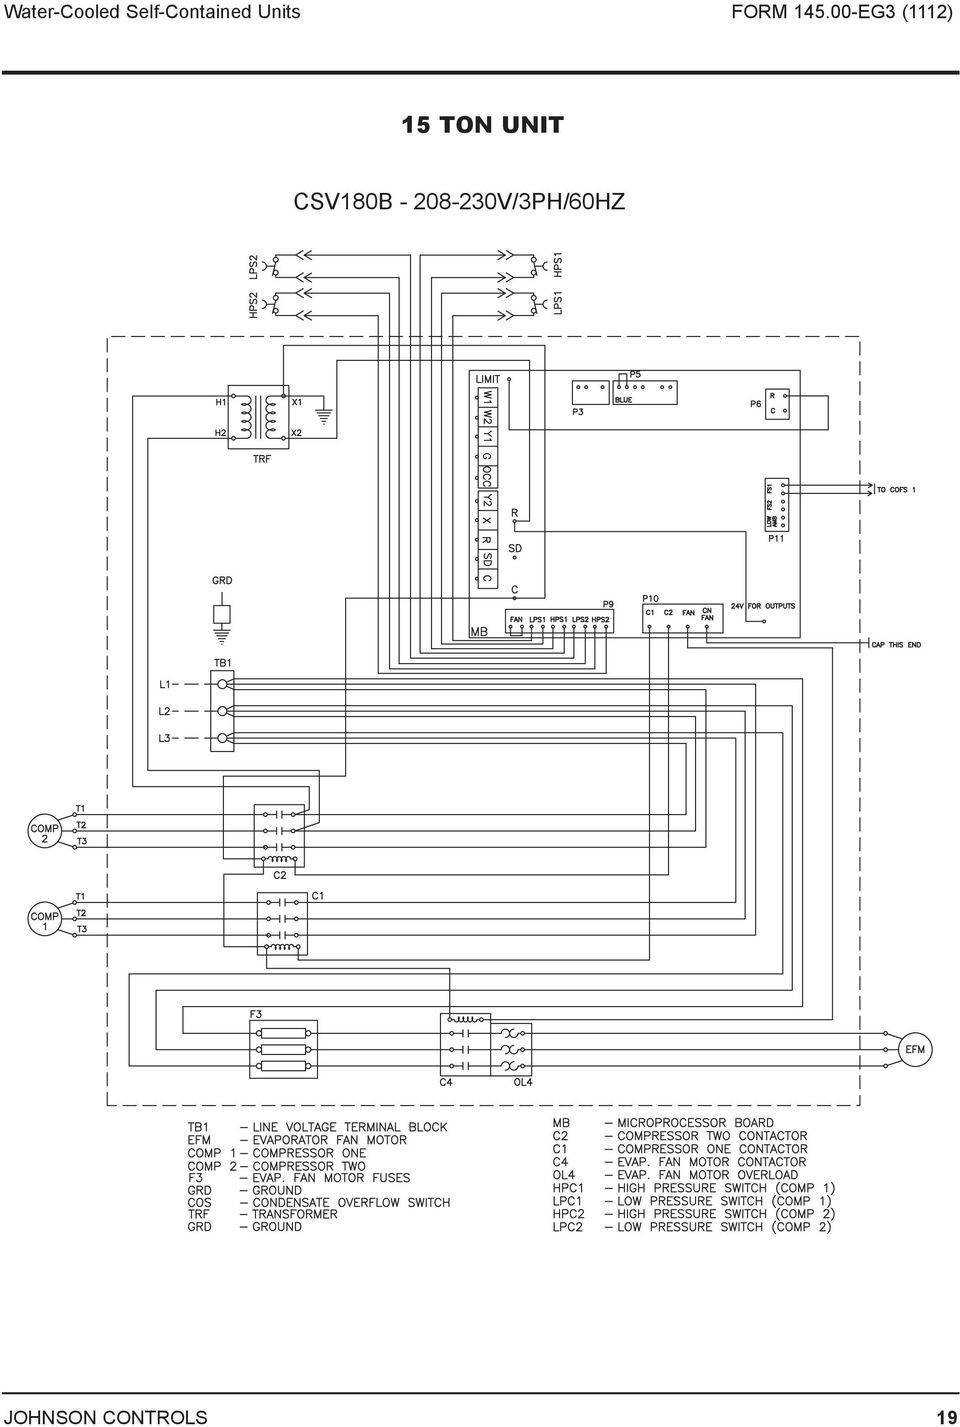 Aaon Rq Series Wiring Diagrams Engineering Guide Water Cooled Self Contained Units C 20 Ton Unit Csv240b 460 575v 3ph 60hz Johnson Controls